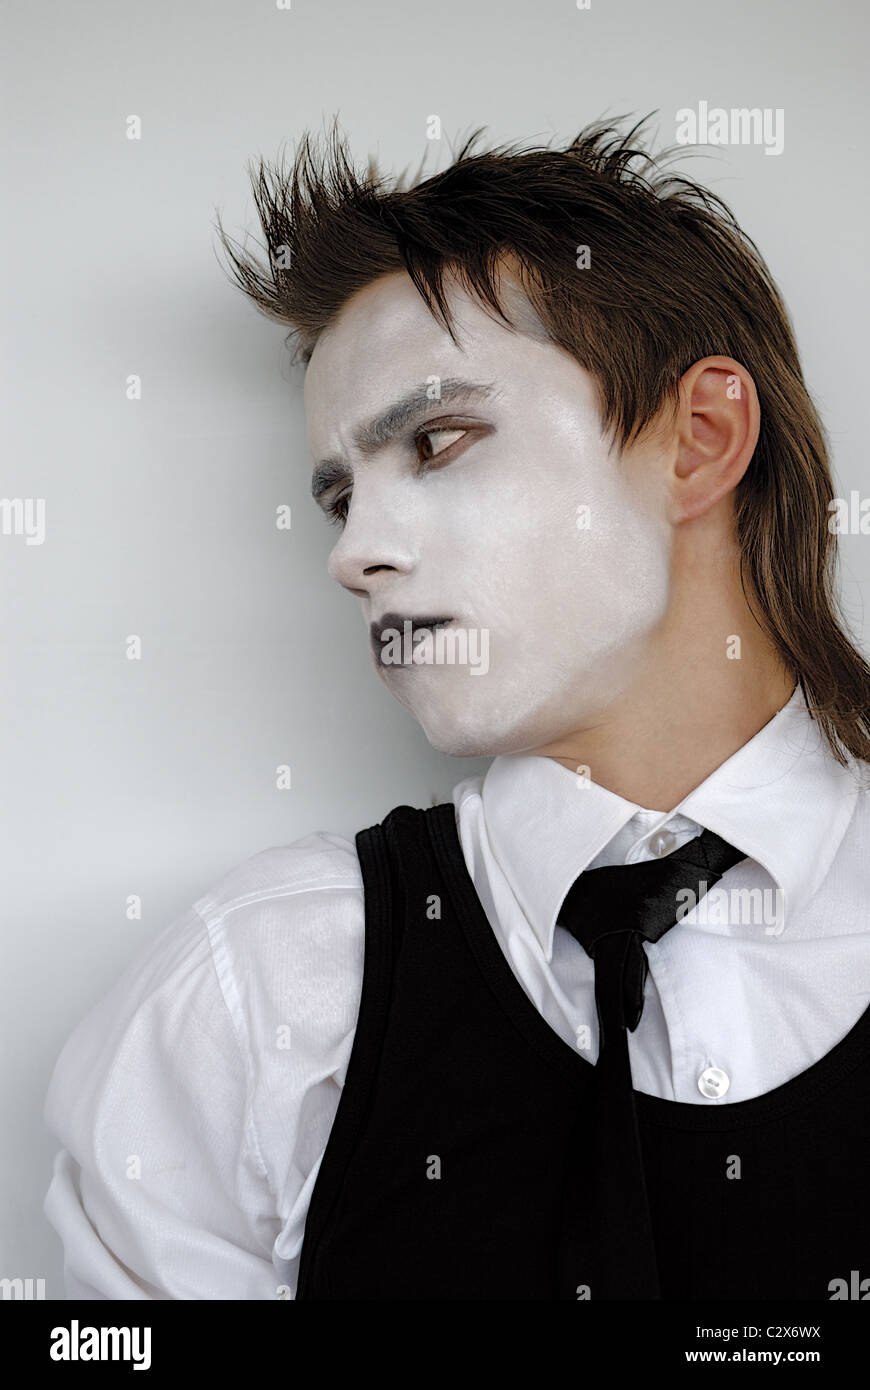 mime - Stock Image